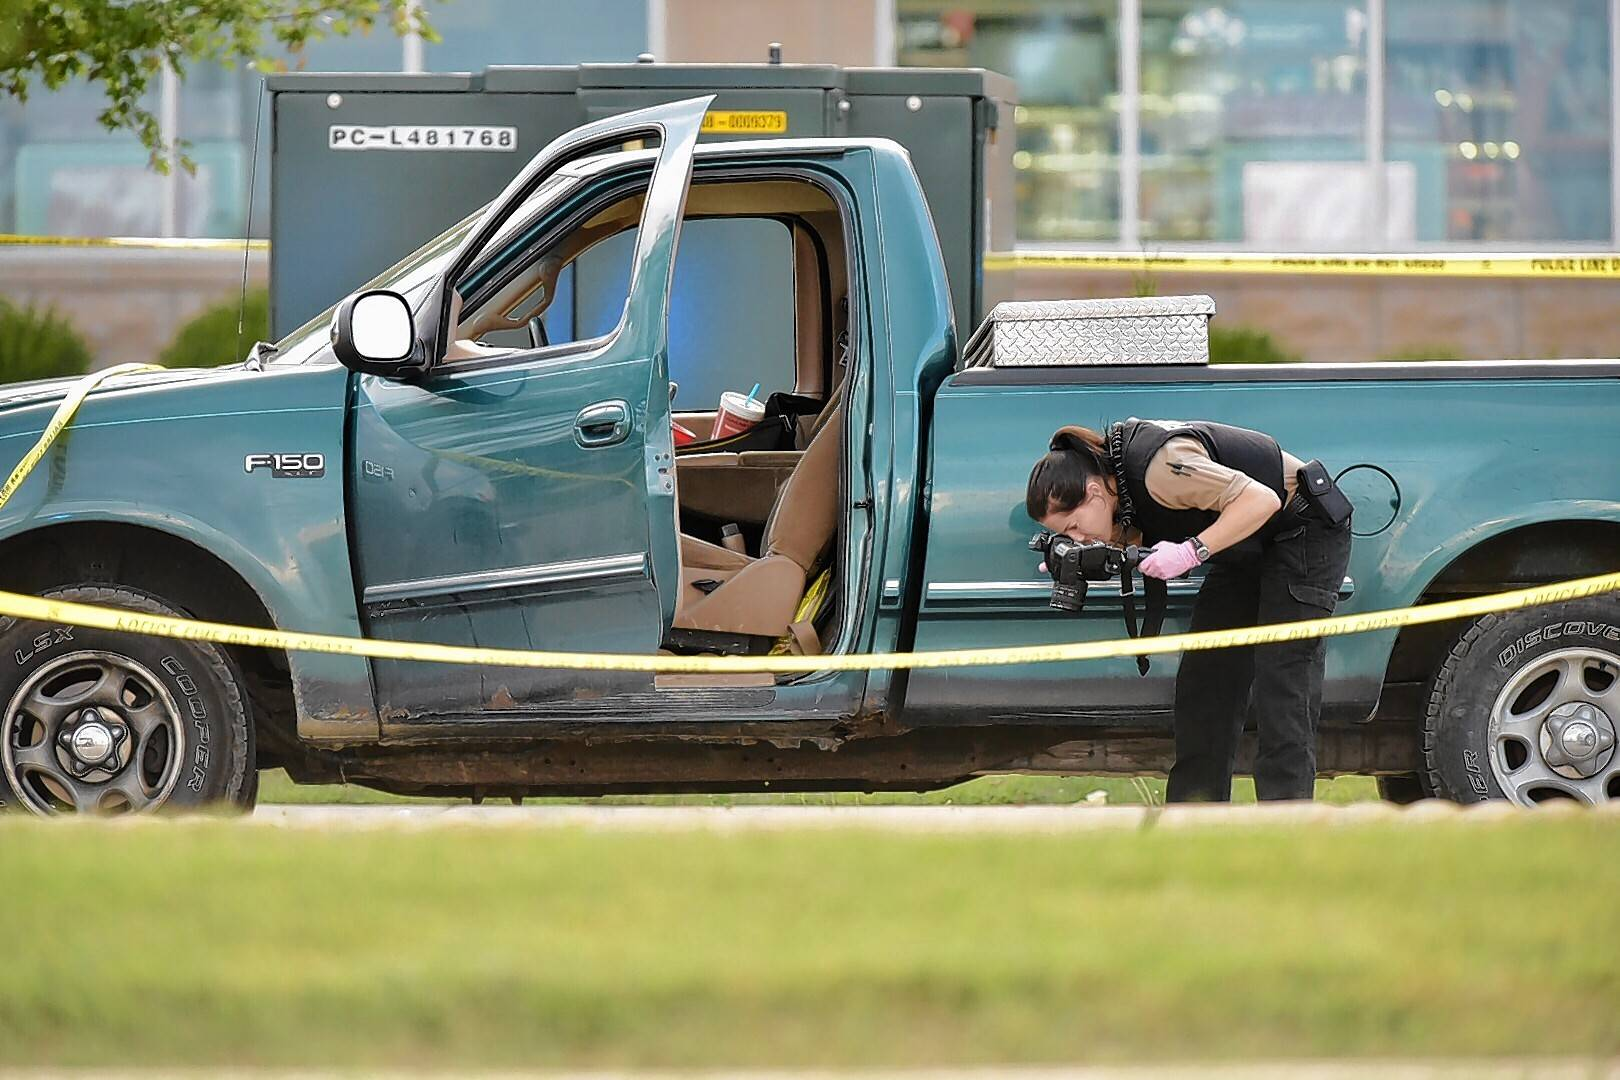 Police say public not in danger after shooting in Schaumburg store parking lot